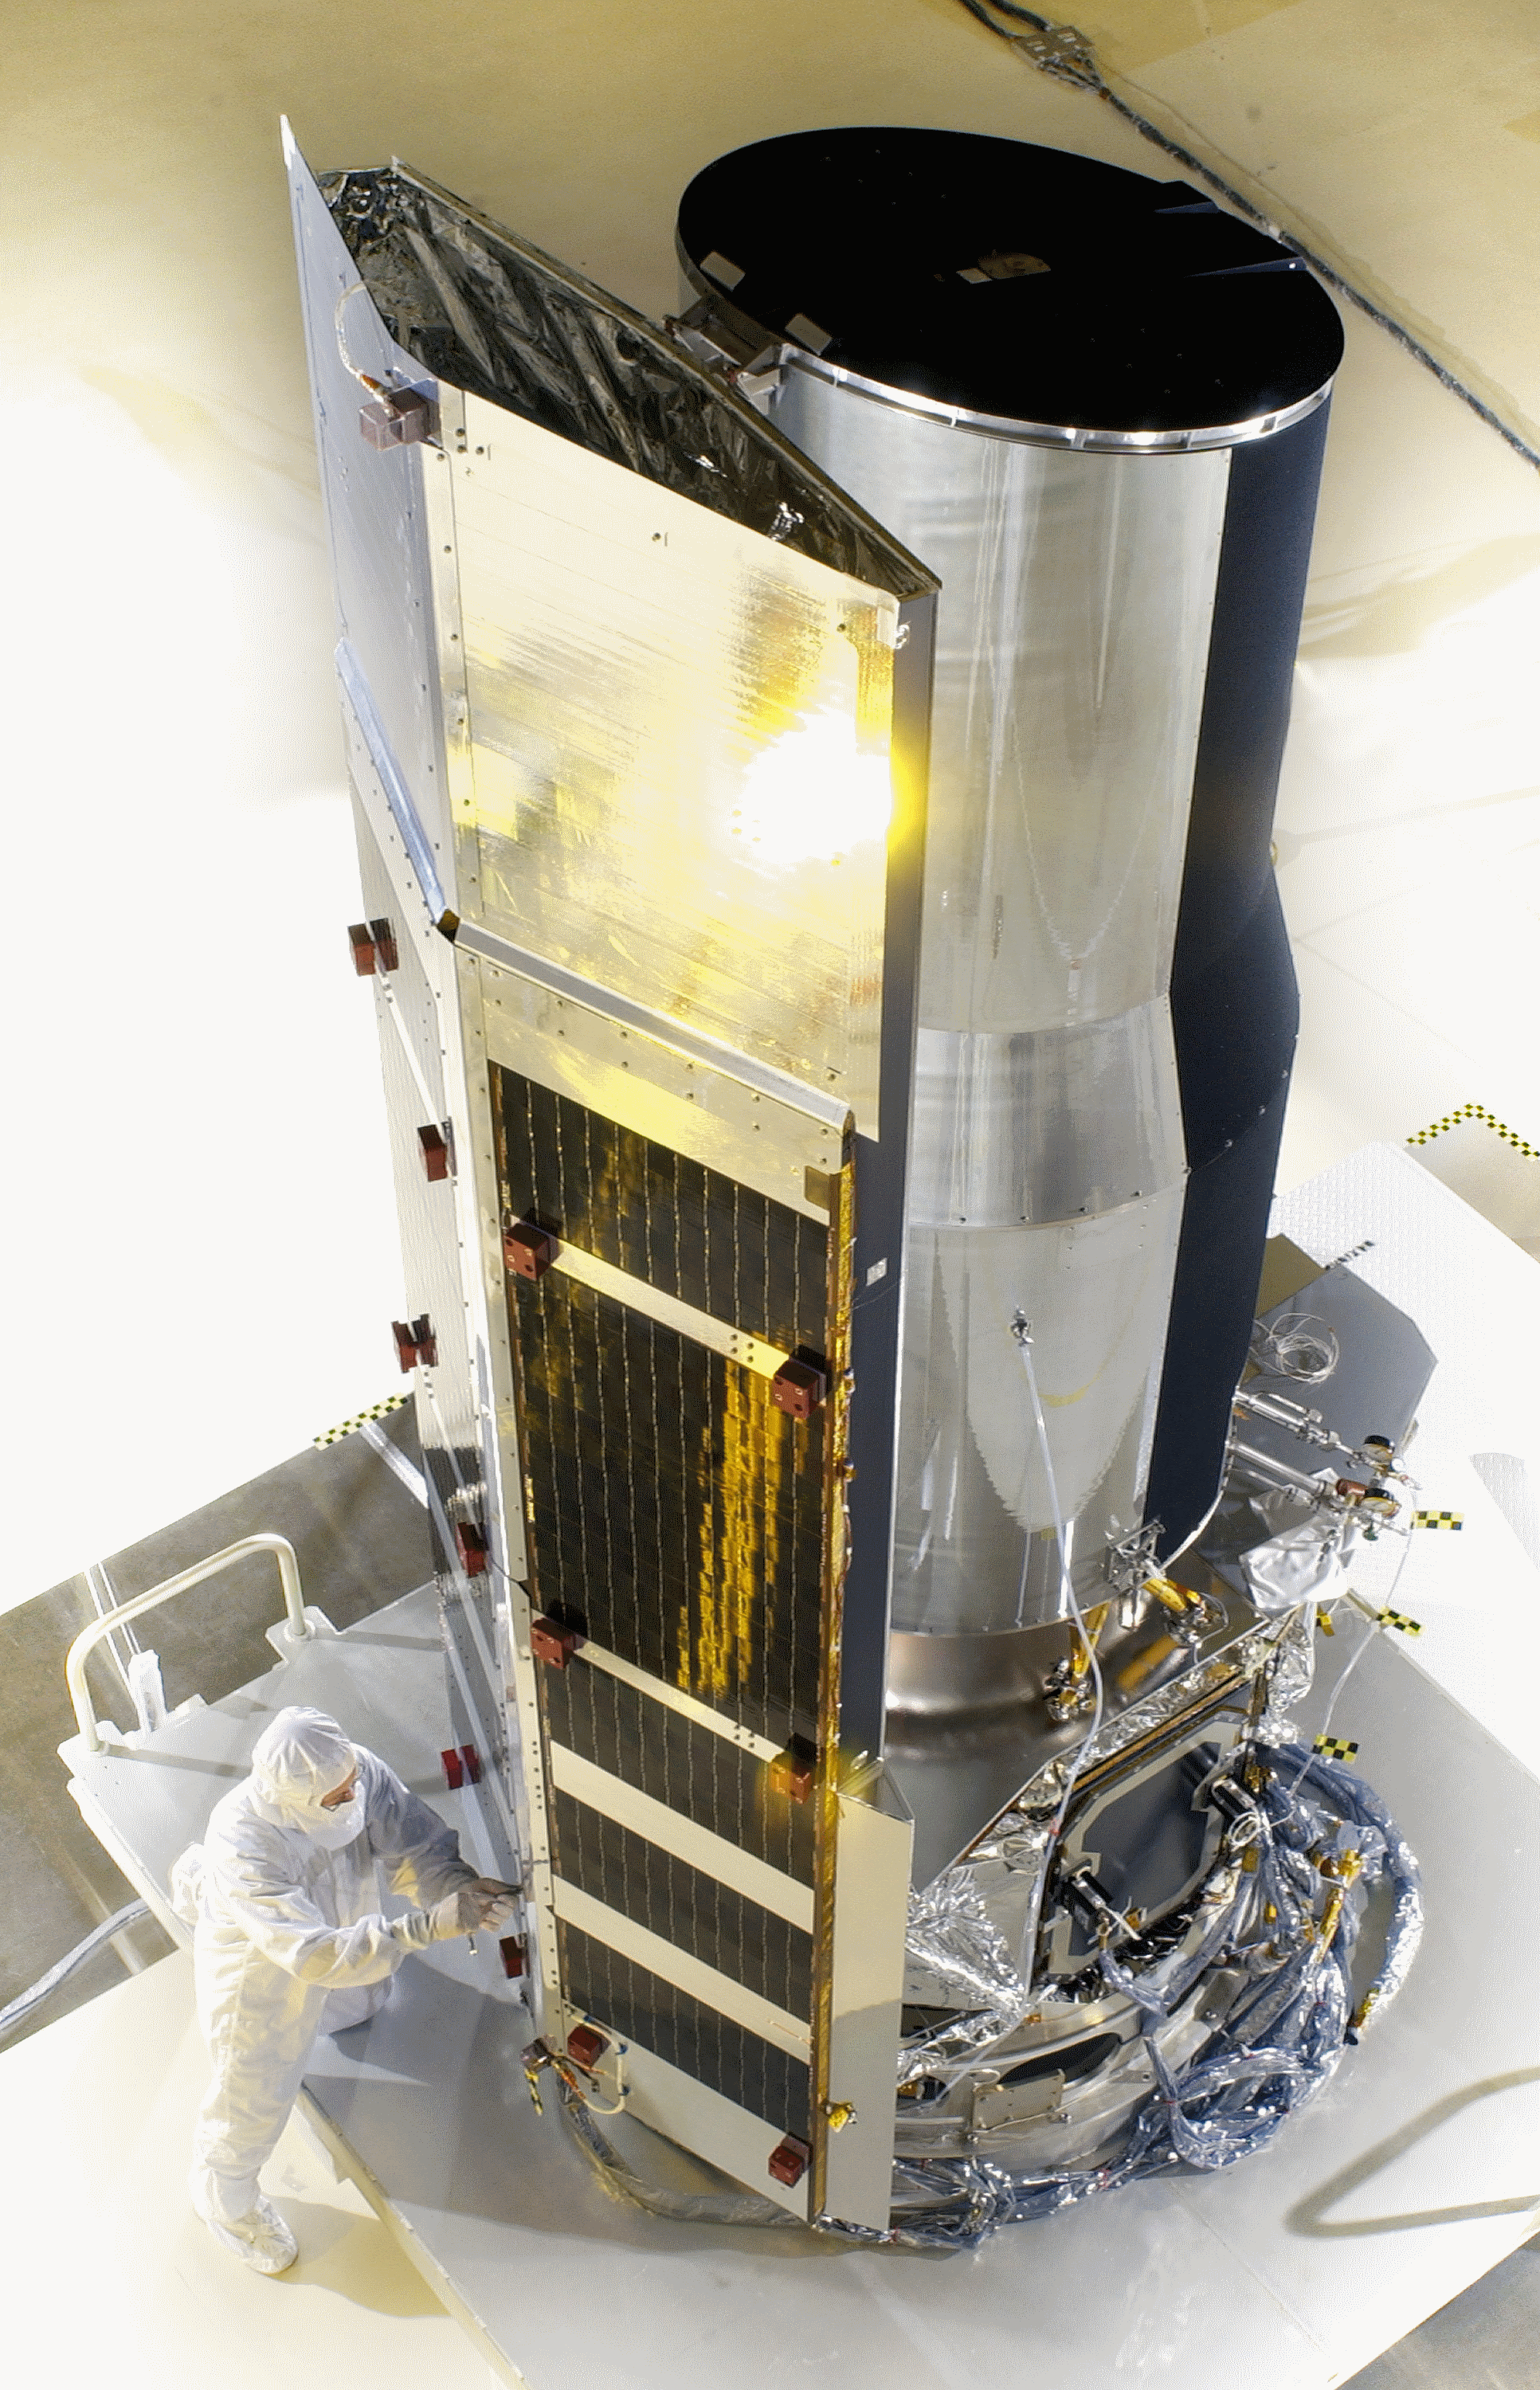 The Spitzer Space Telescope pre-launch. NASA -JPL - CALTECH